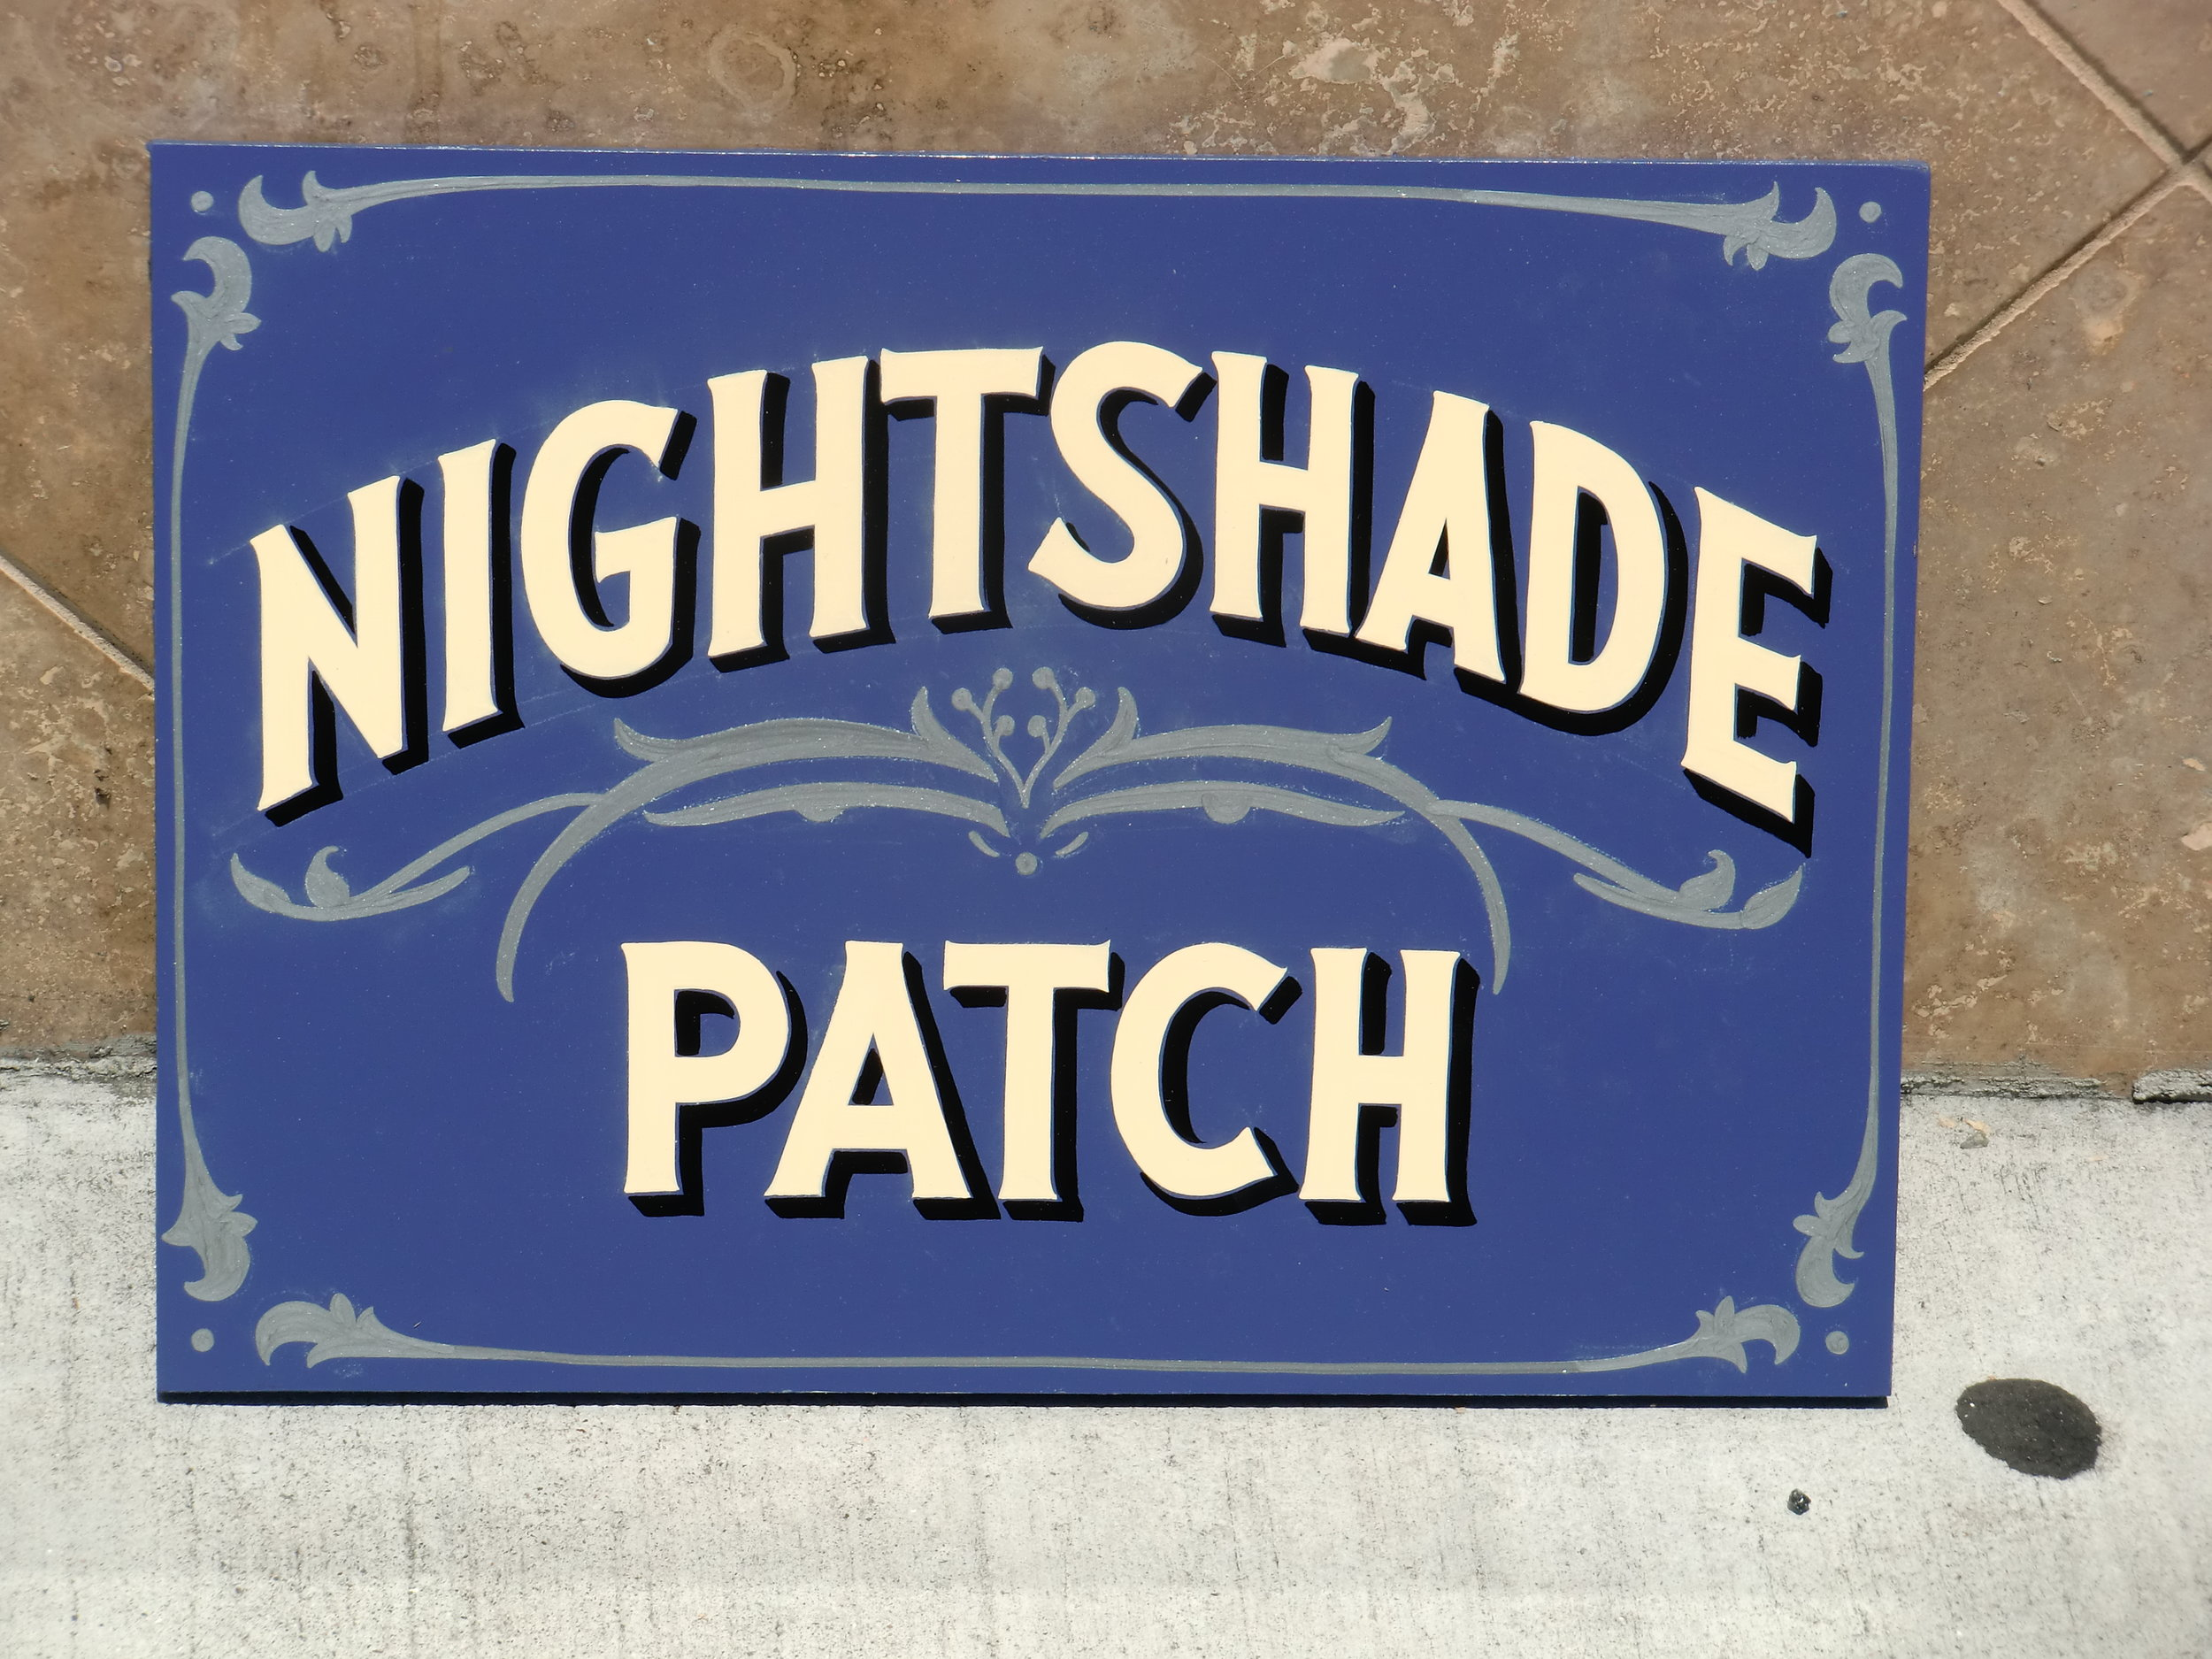 HAND-nightshade-patch_5959422288_o.jpg